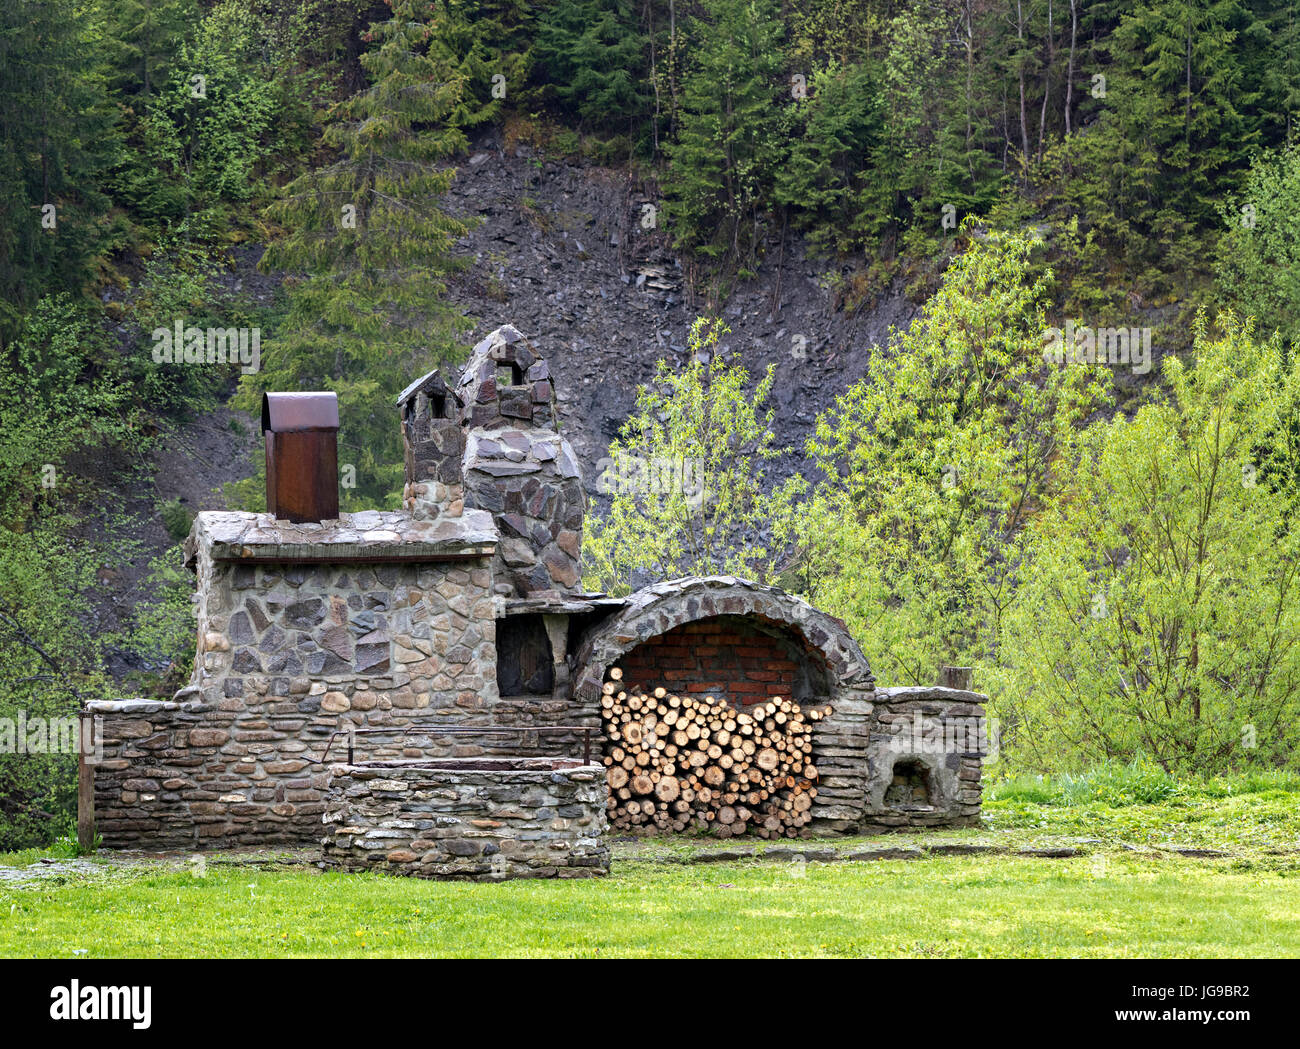 An old stone stove with firewood, a skewer for meat and a smokehouse for cooking outdoors in the Carpathians. - Stock Image